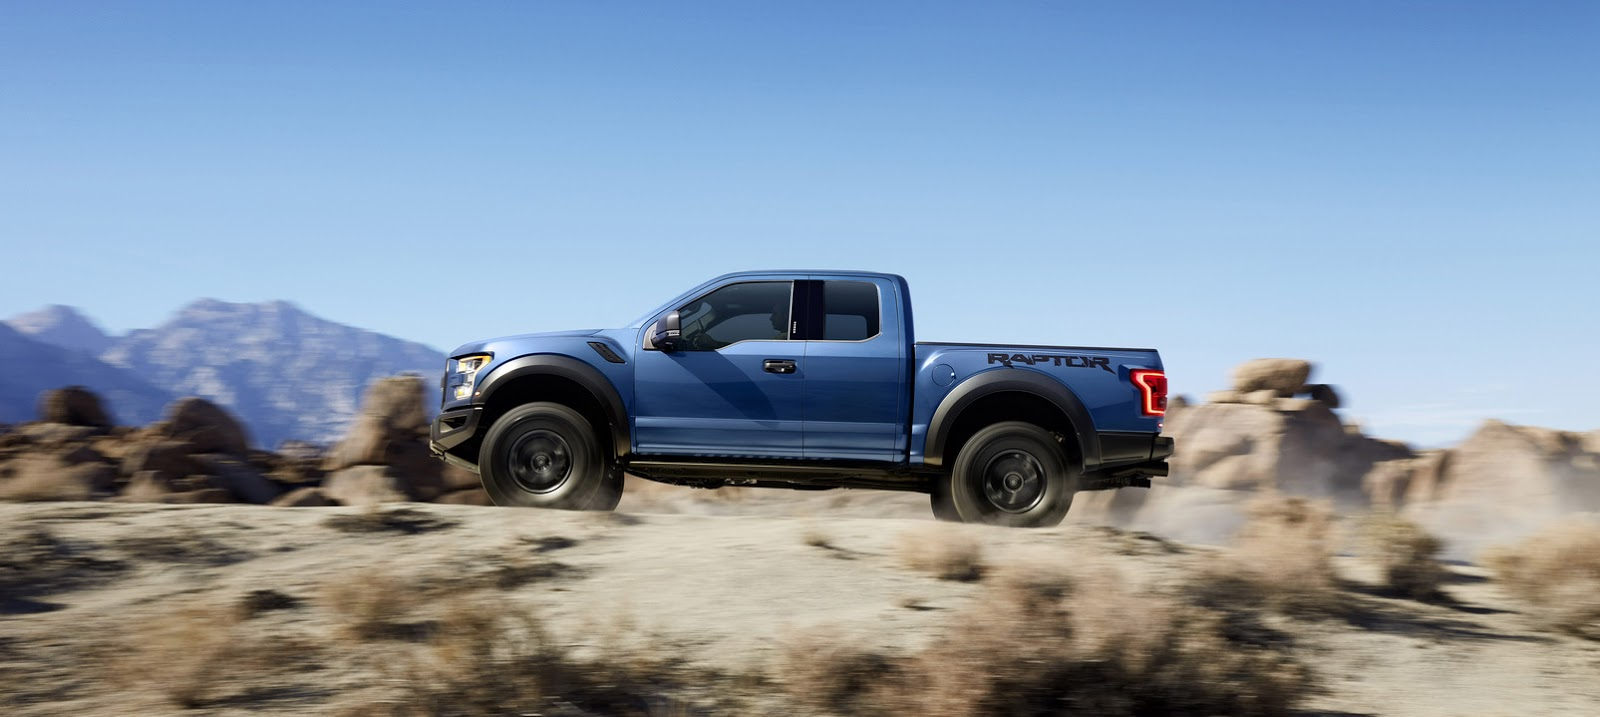 2015 - [Ford] F Series - Page 2 2017-Ford-F-150-Raptor-5